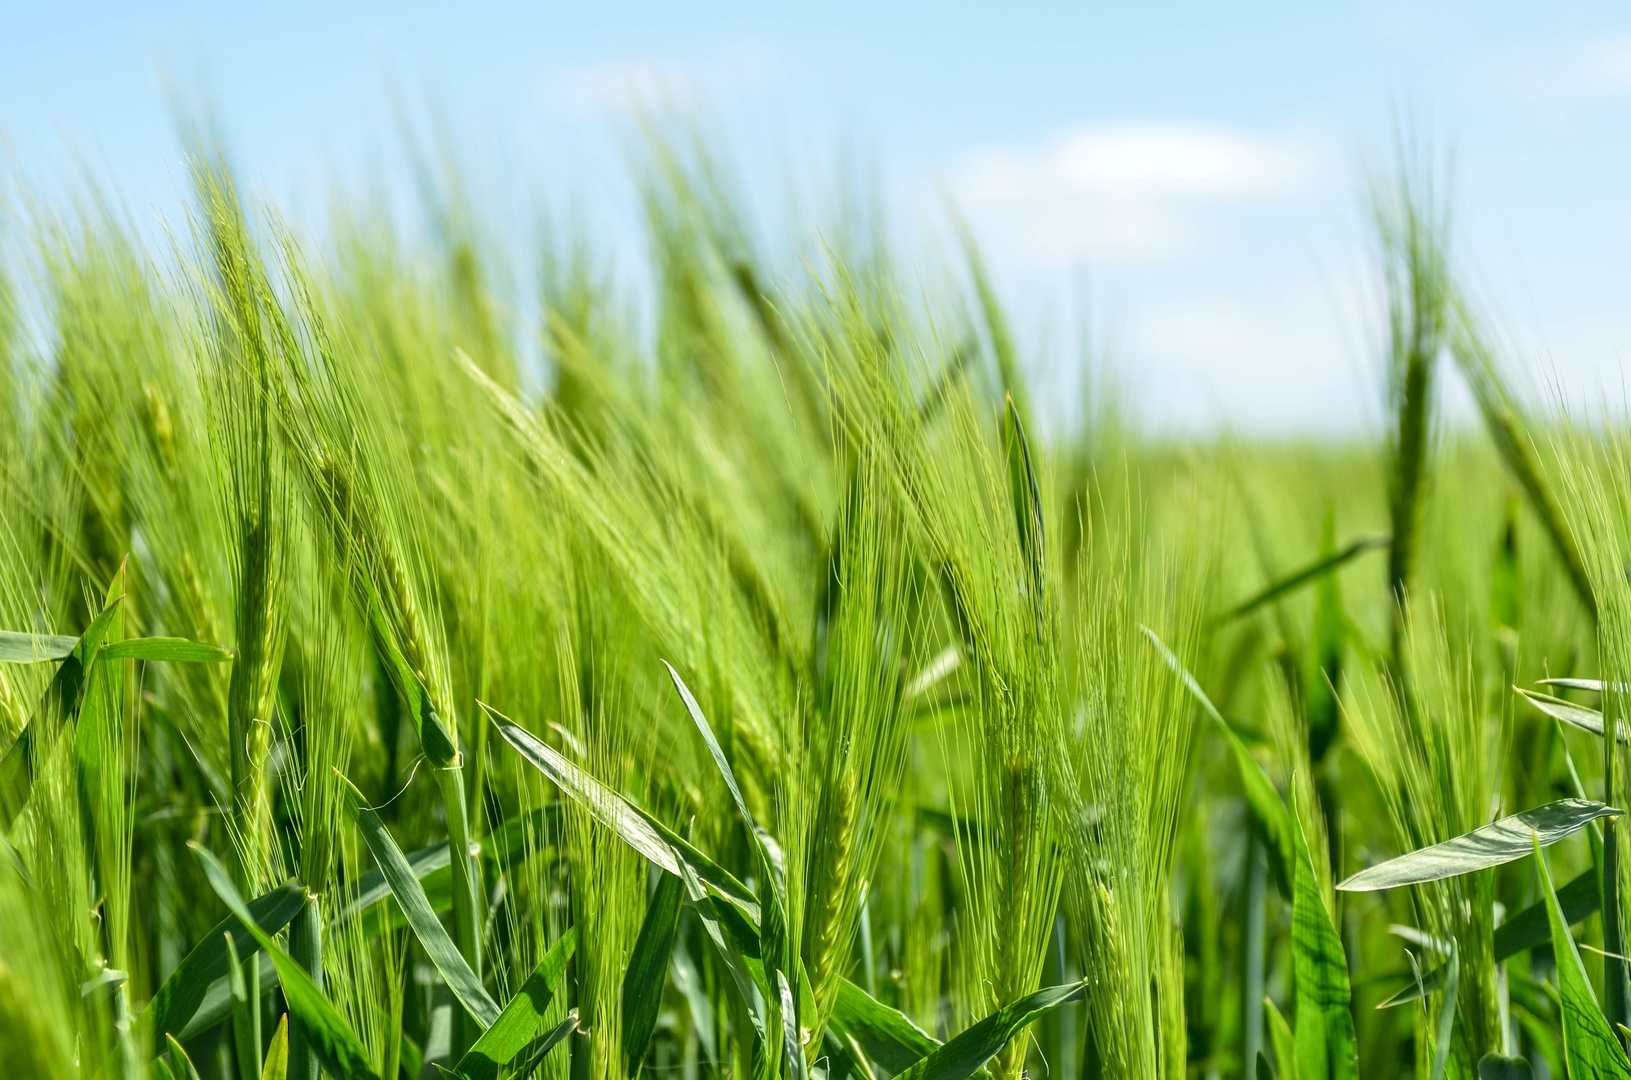 grass-plant-field-lawn-meadow-barley-13566-pxhere.com